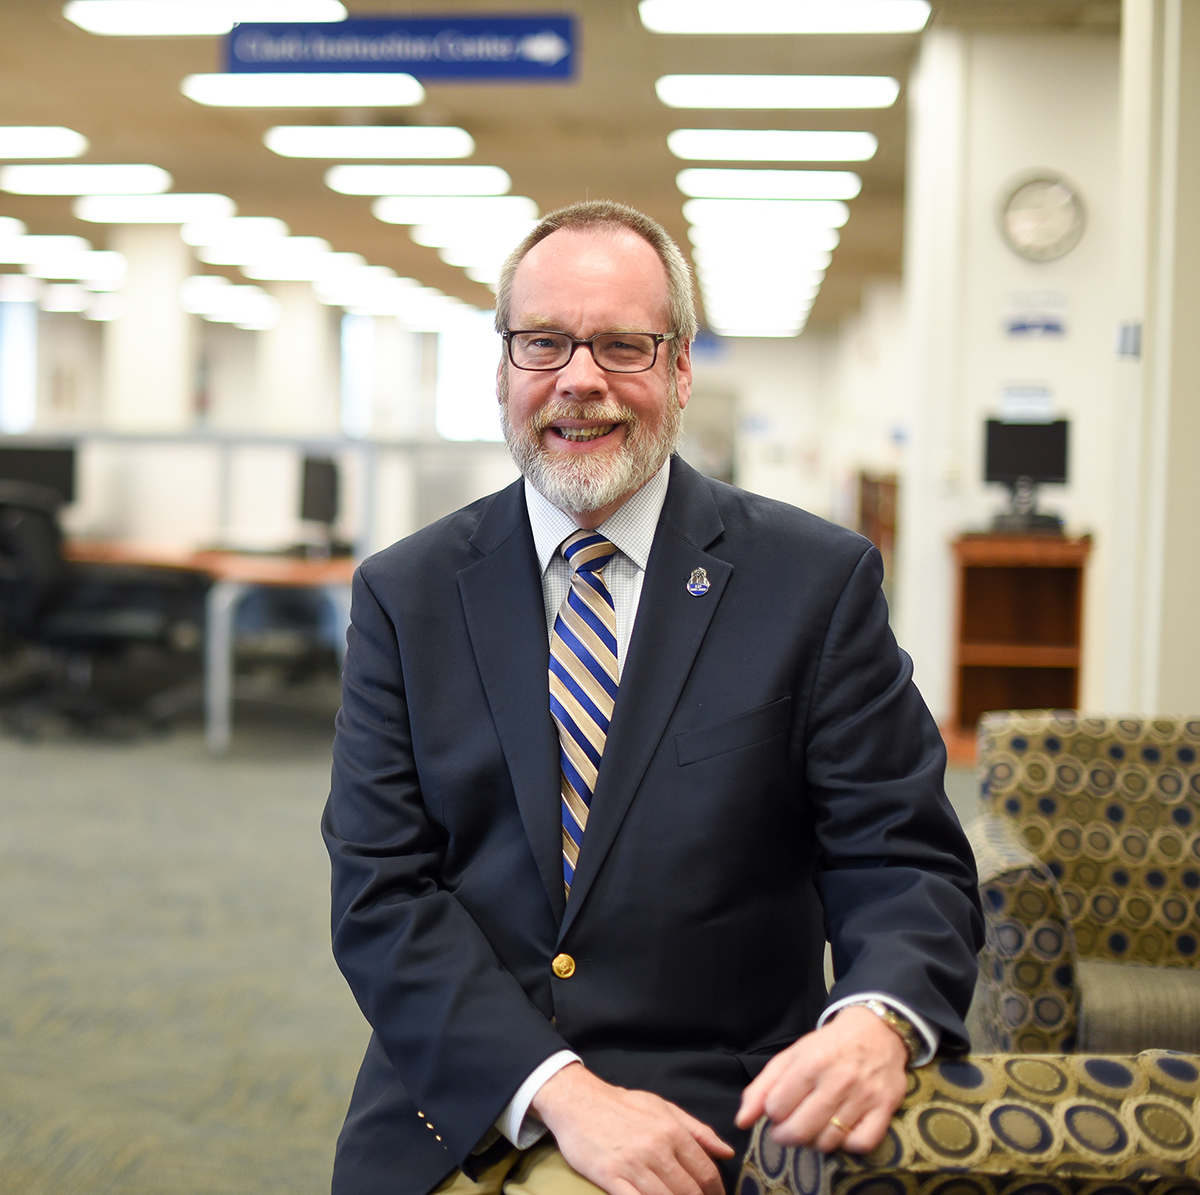 Kevin L. Smith, dean of KU Libraries